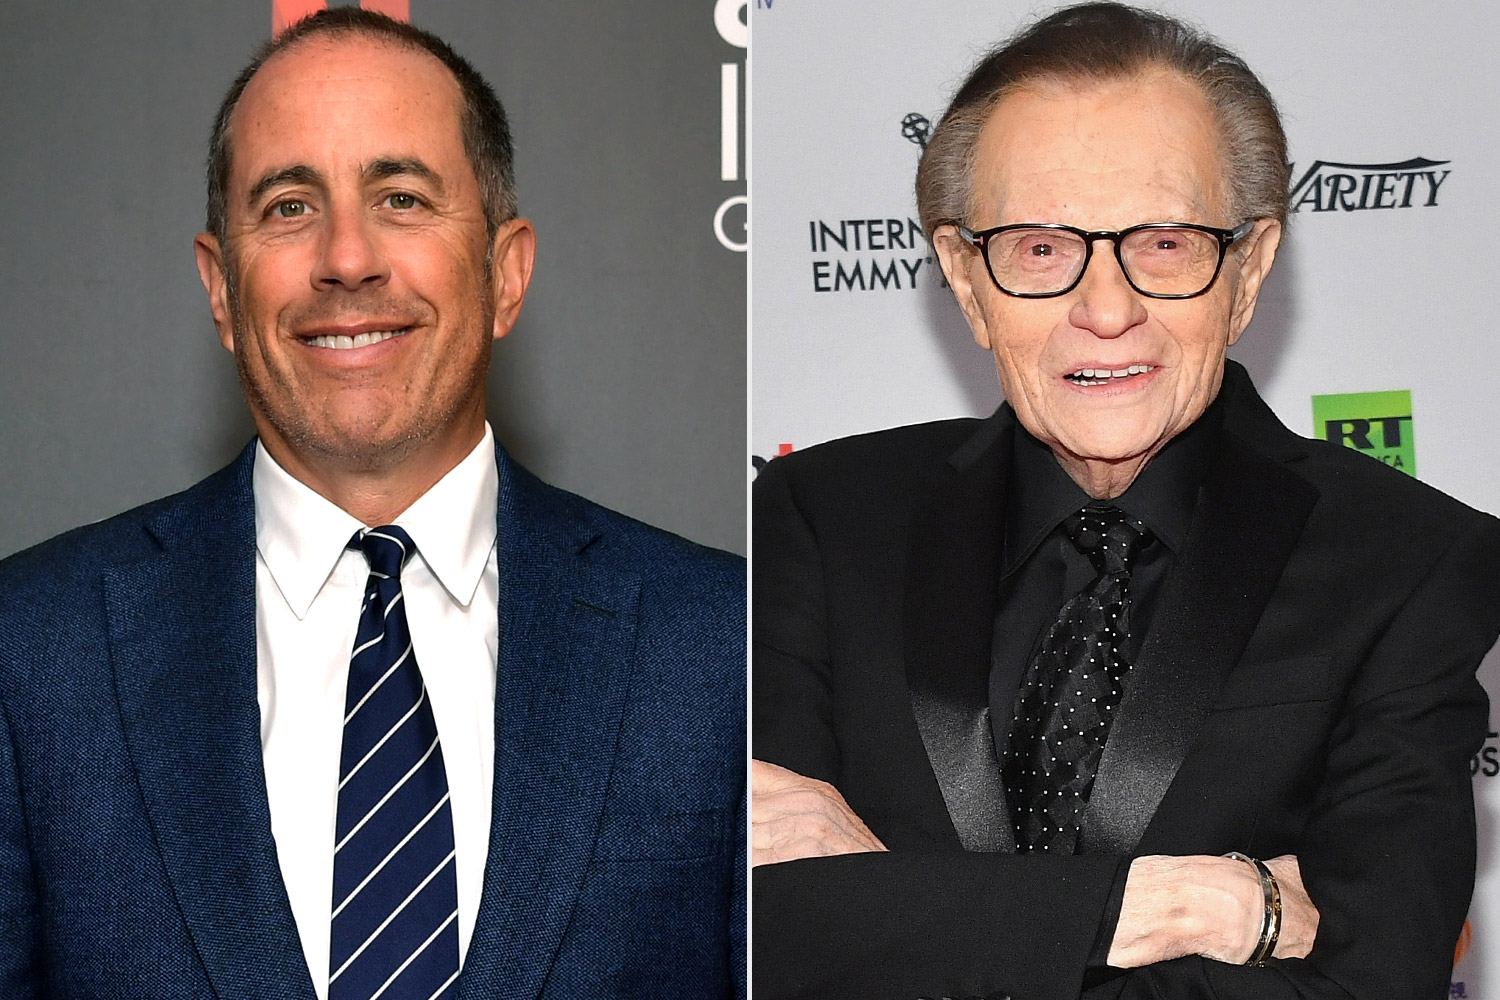 Jerry Seinfeld and Larry King